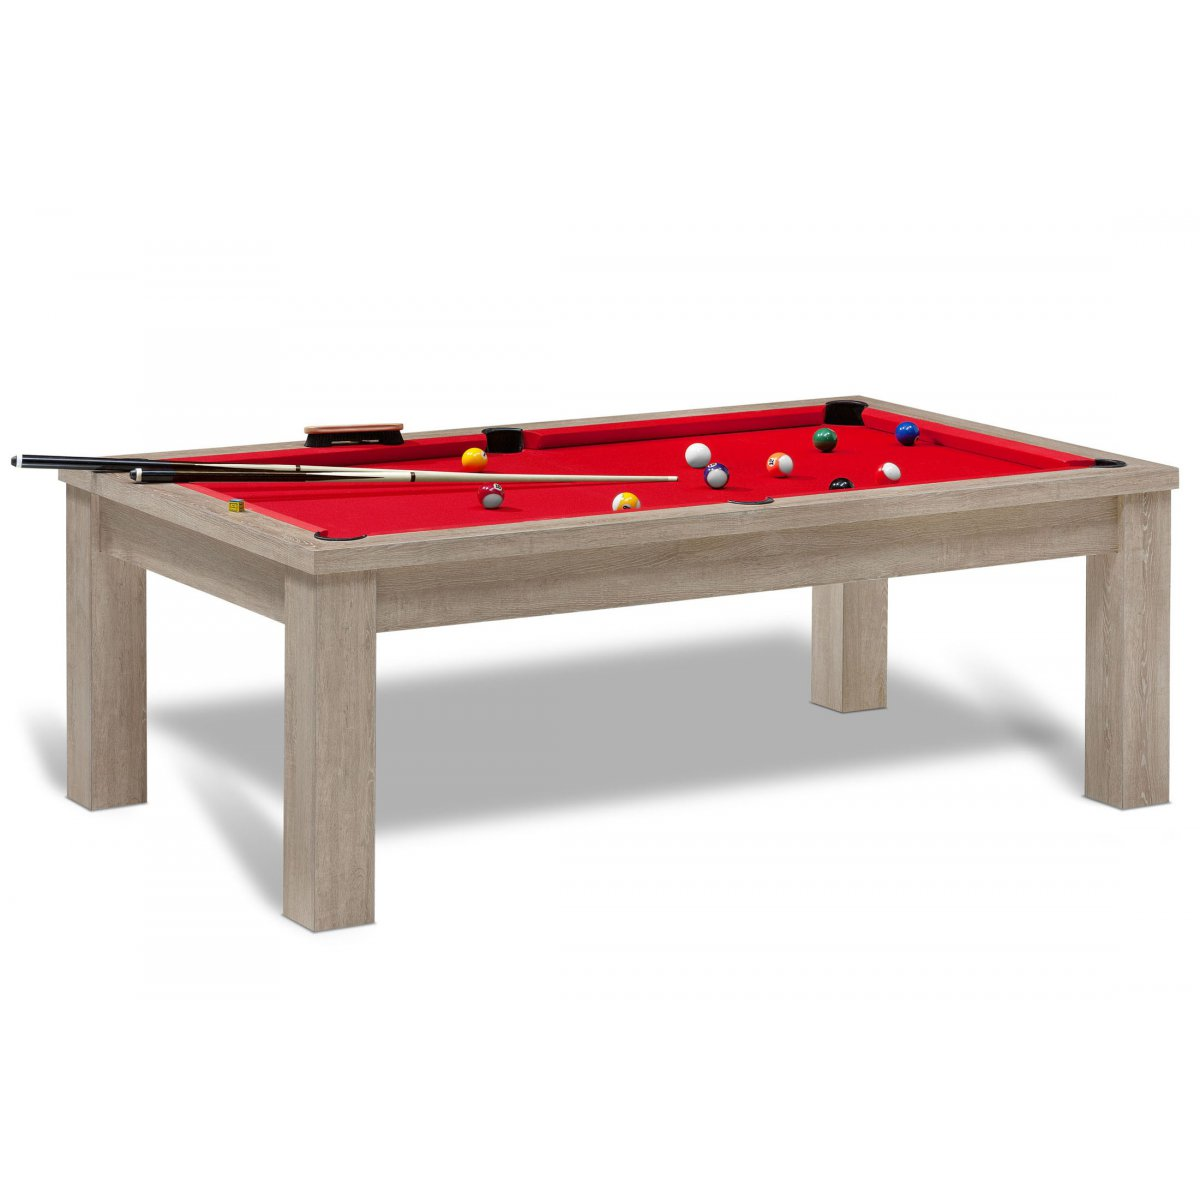 Billard am ricain billard table personnalisable jeux us - Table billard transformable occasion ...